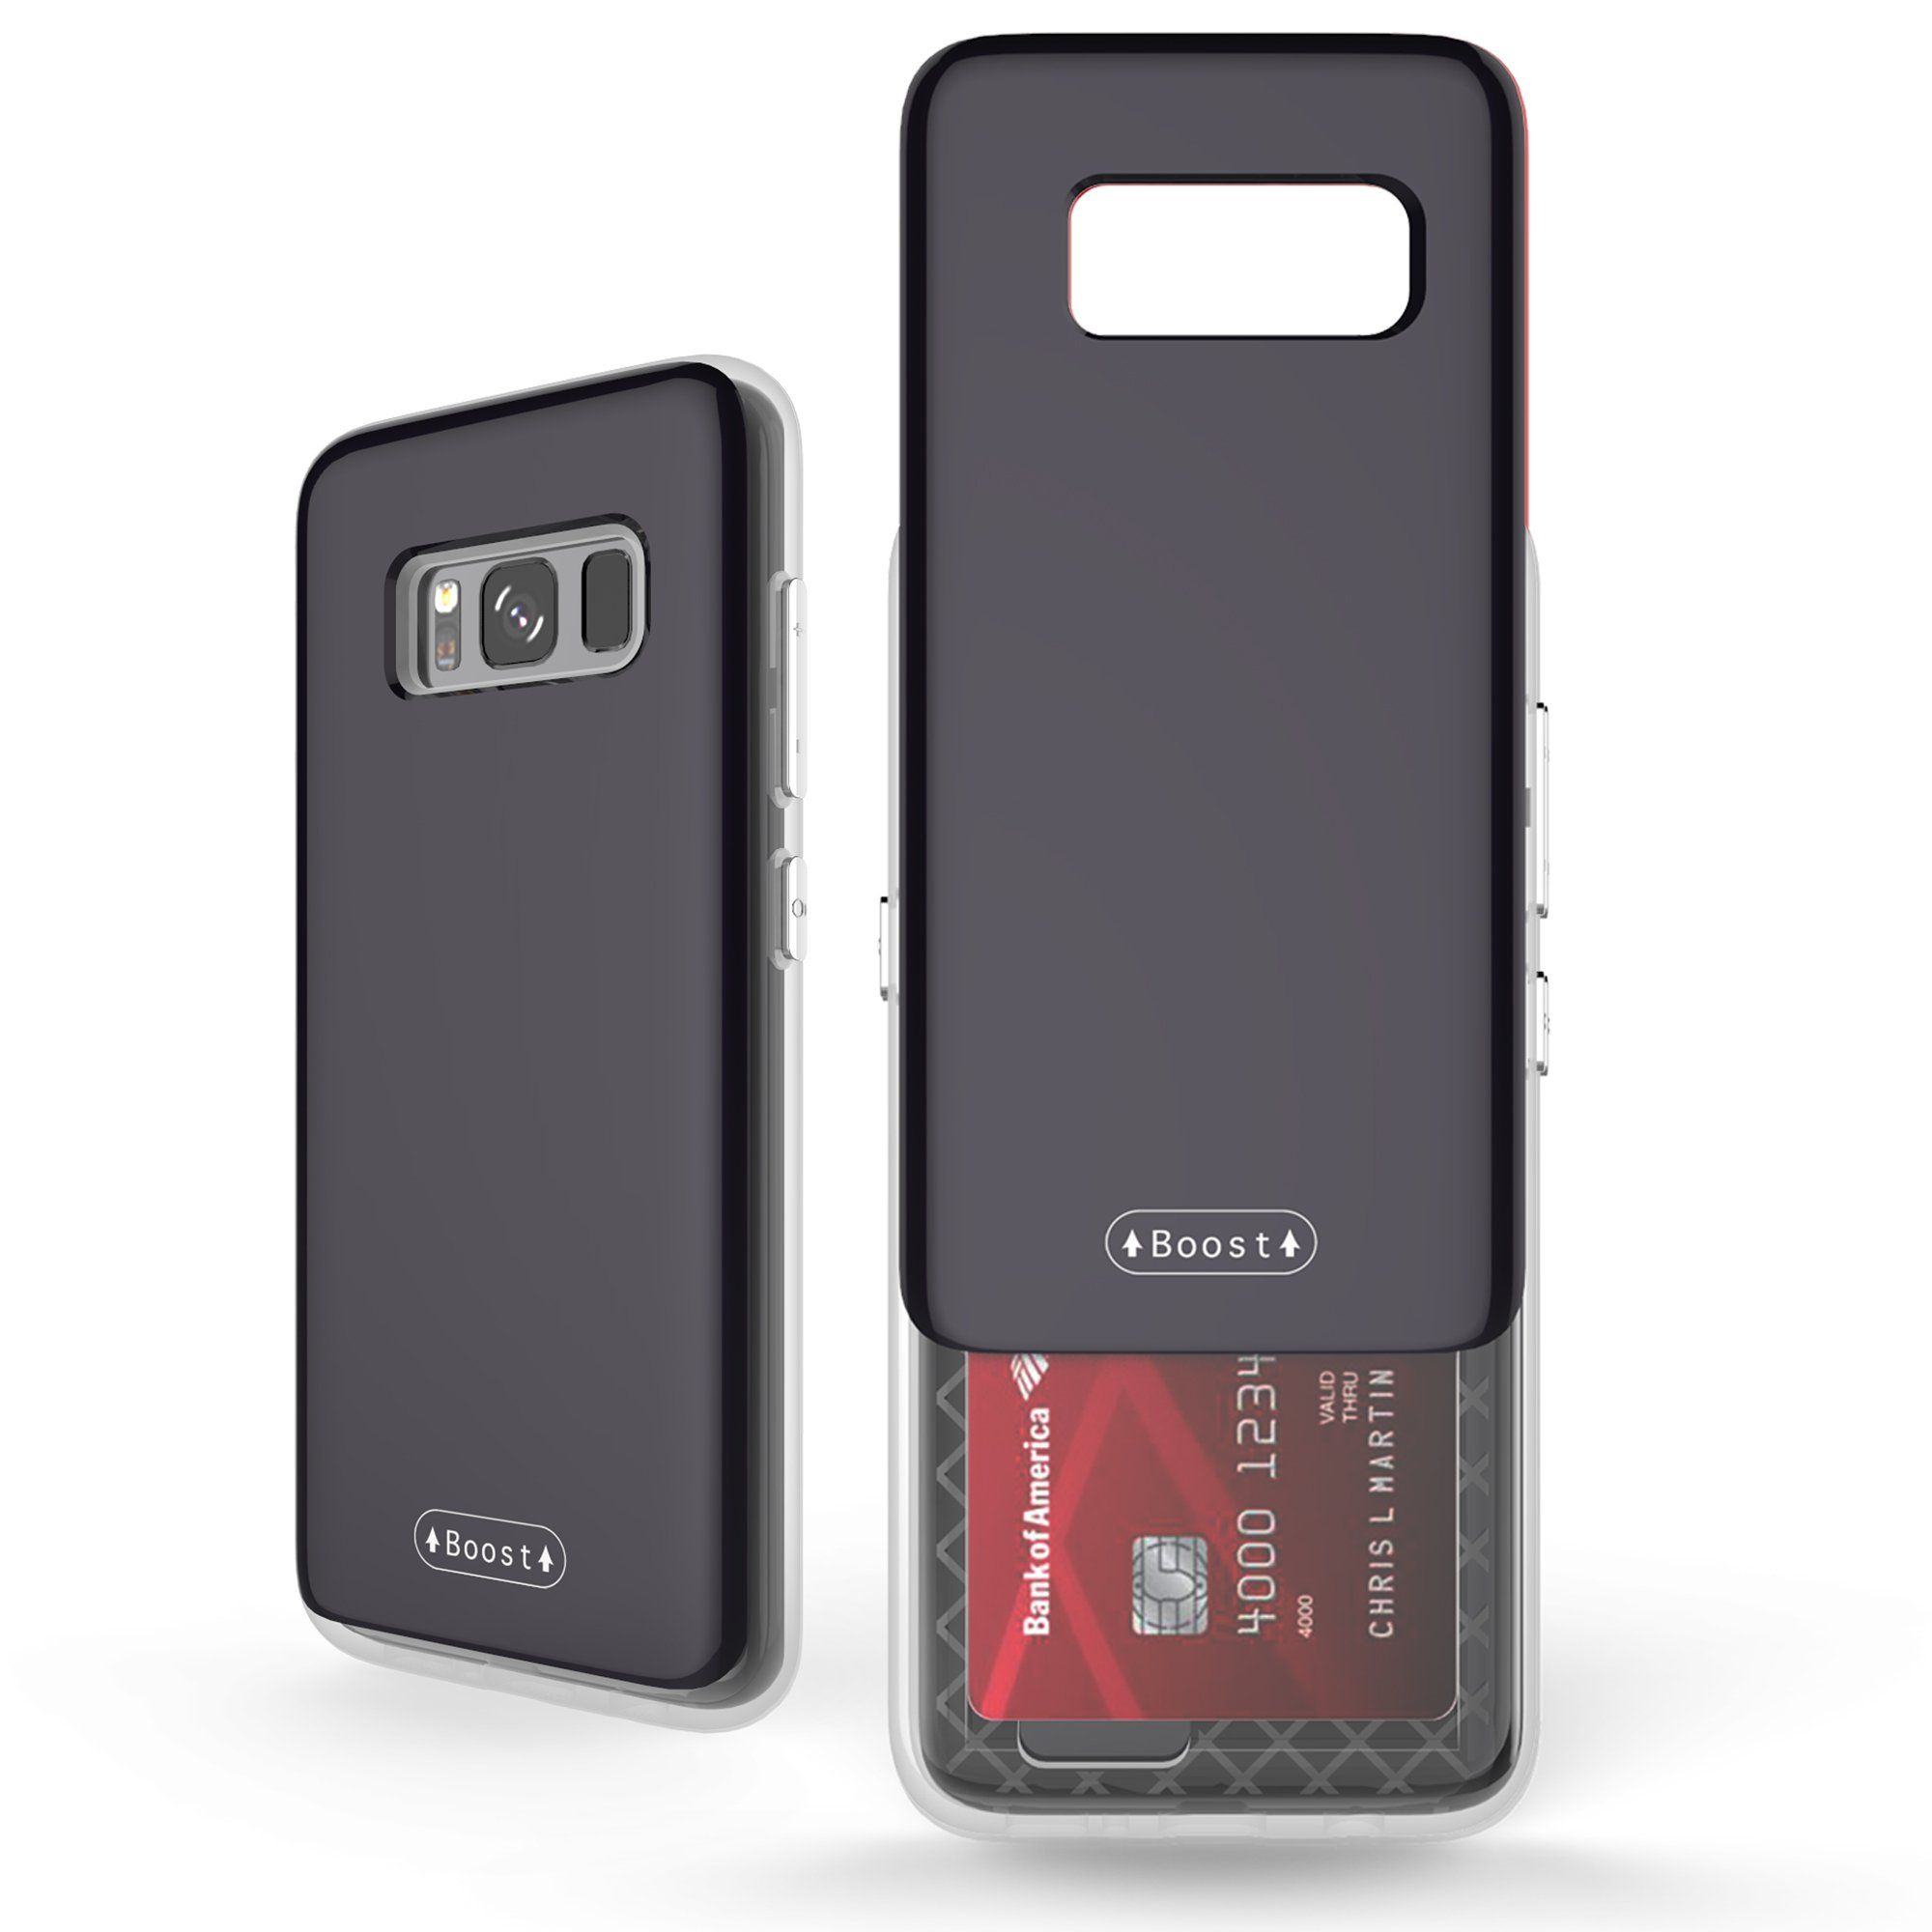 Case Anti Shock Crack For Samsung Galaxy J7 Prime Fuze Fyber J5 Putih Softcase Minyak Free Anticrack Source S8 Molan Cano Boost Sliding Card Holder Wallet Dual Layer